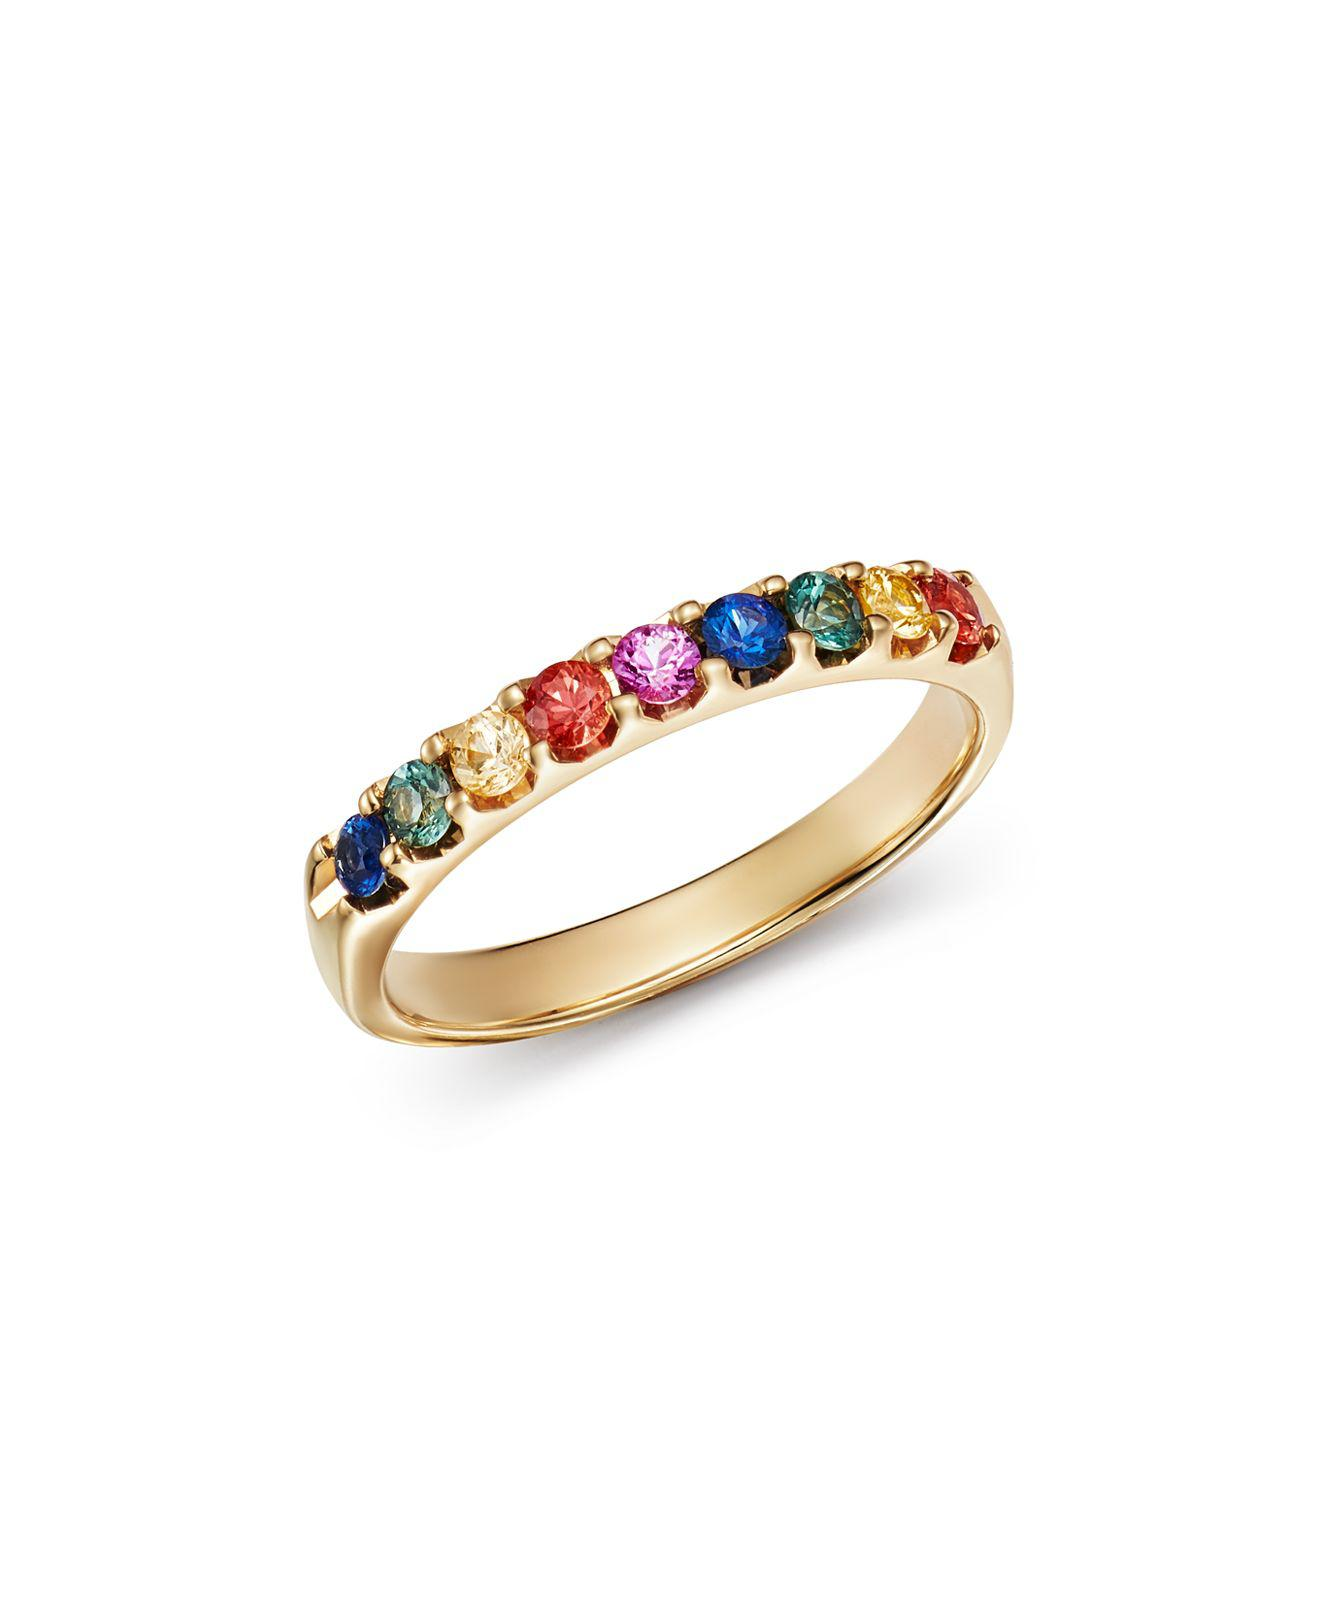 band p chaumet ring betteridge sapphire multicolored